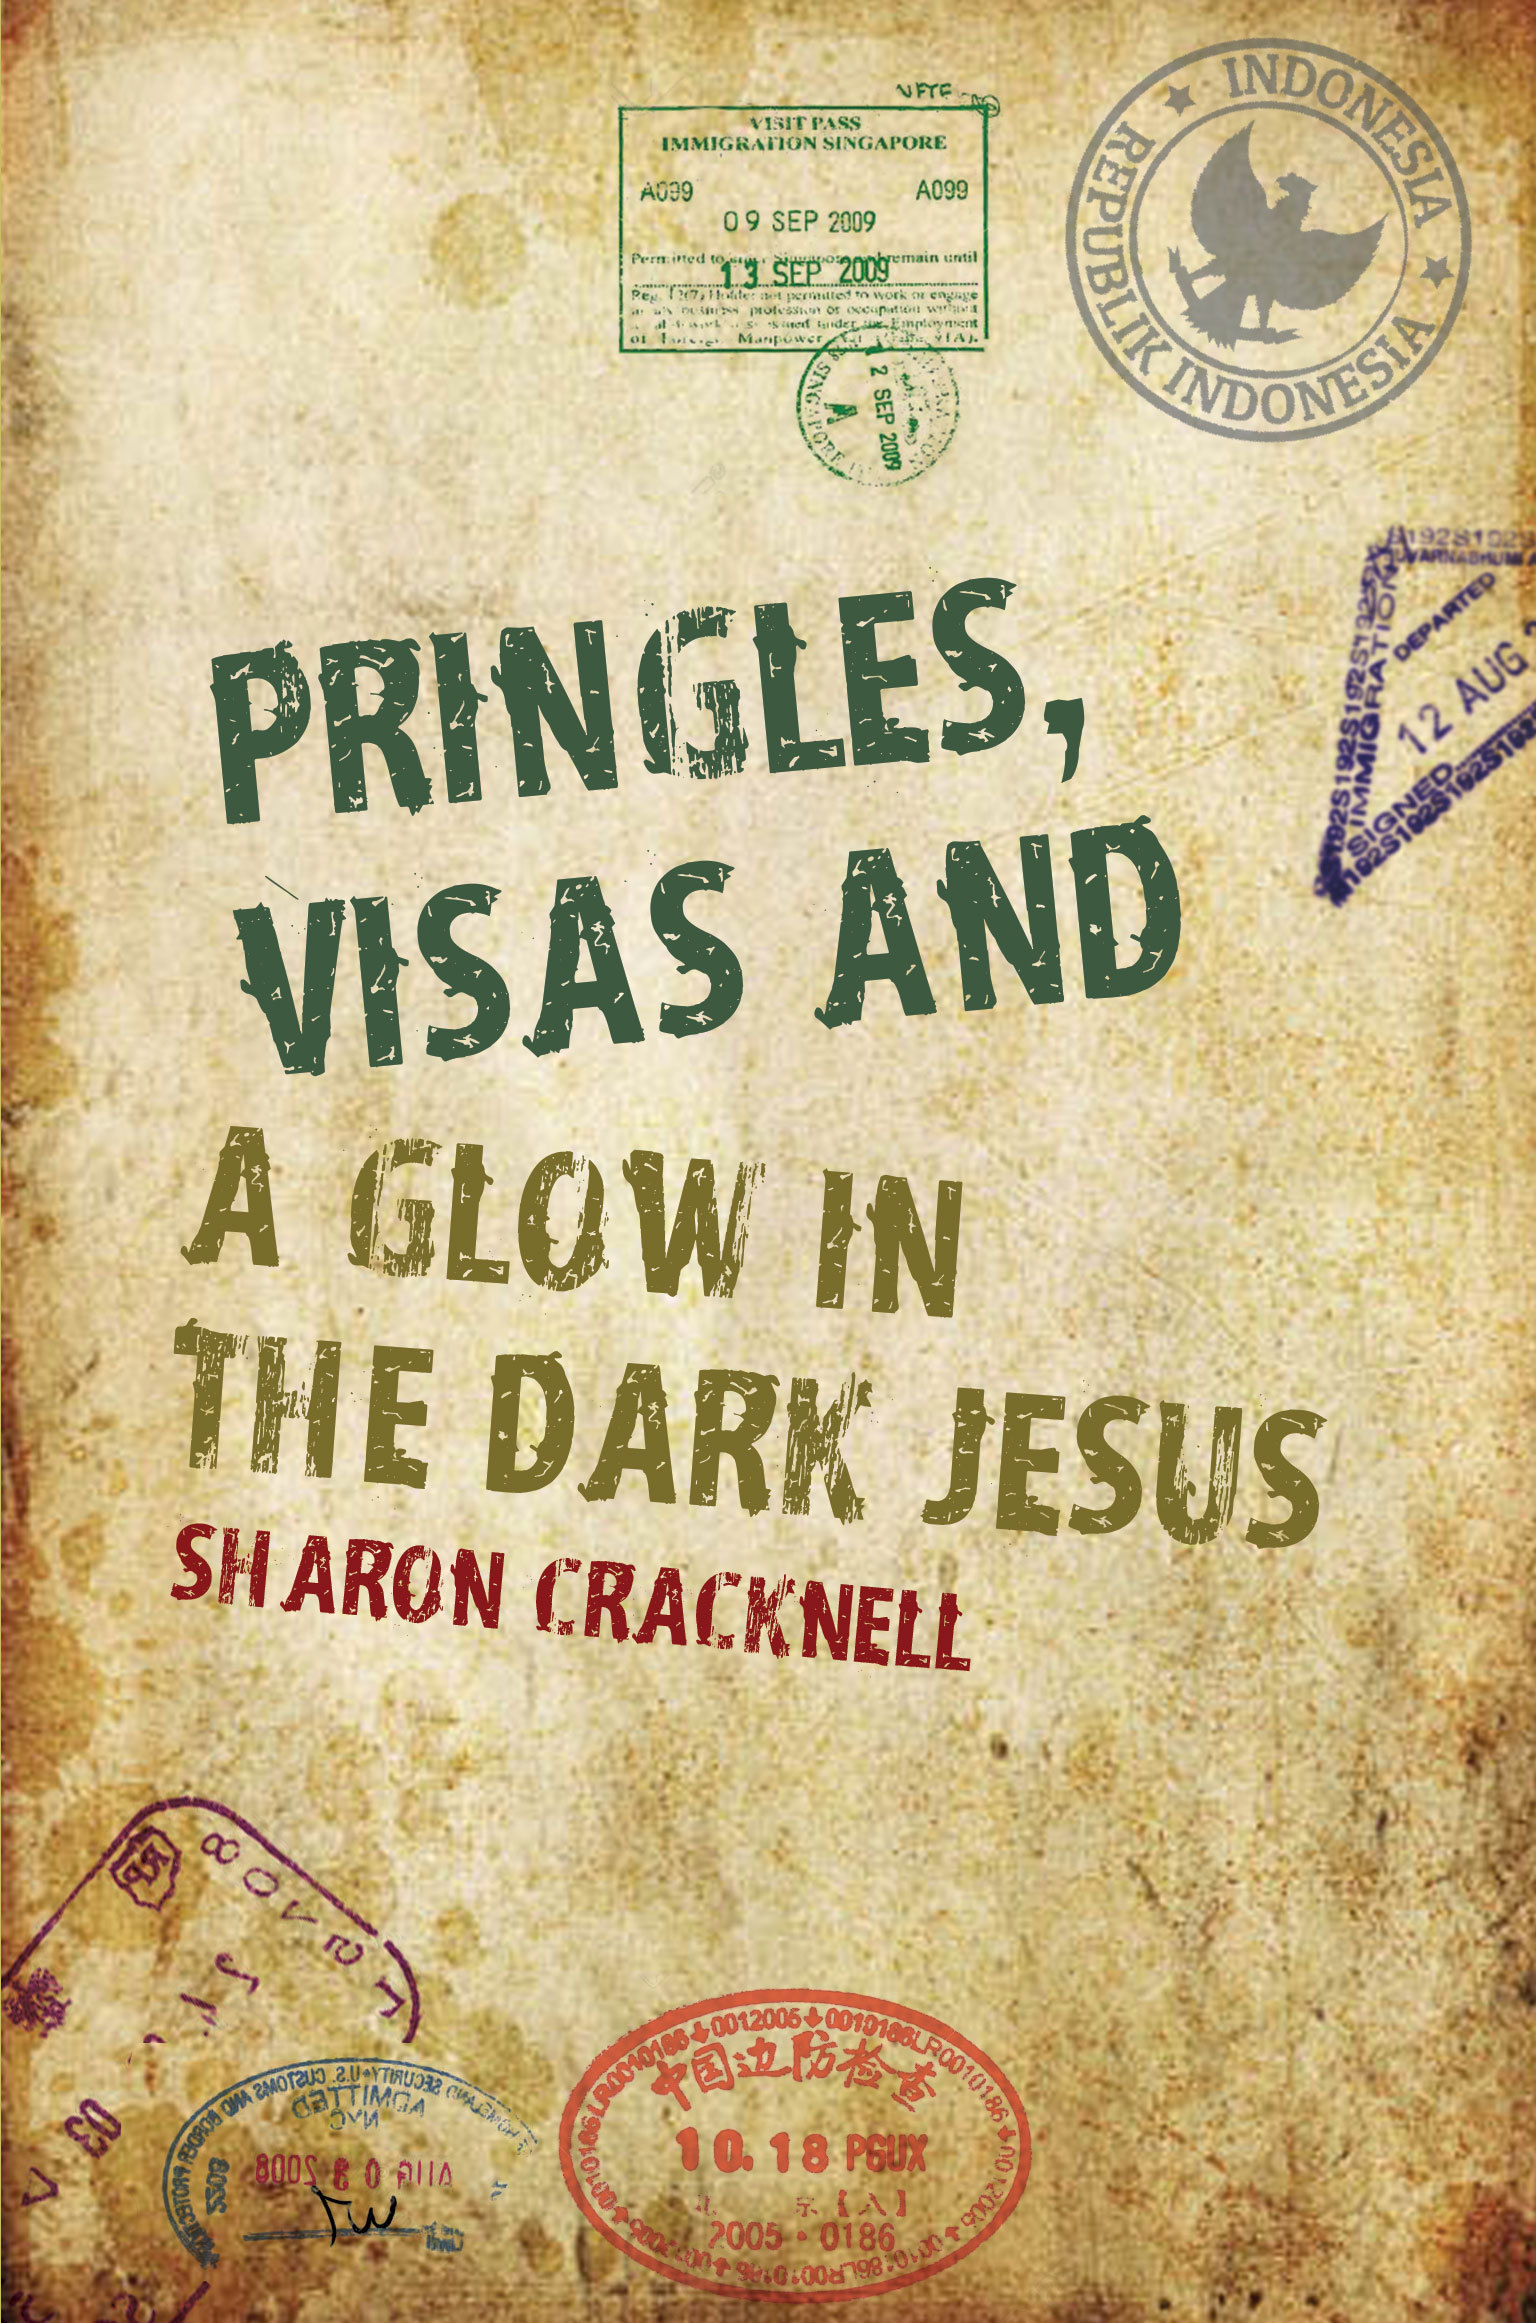 Pringles, Visas and a Glow in the Dark Jesus Sharon Cracknell